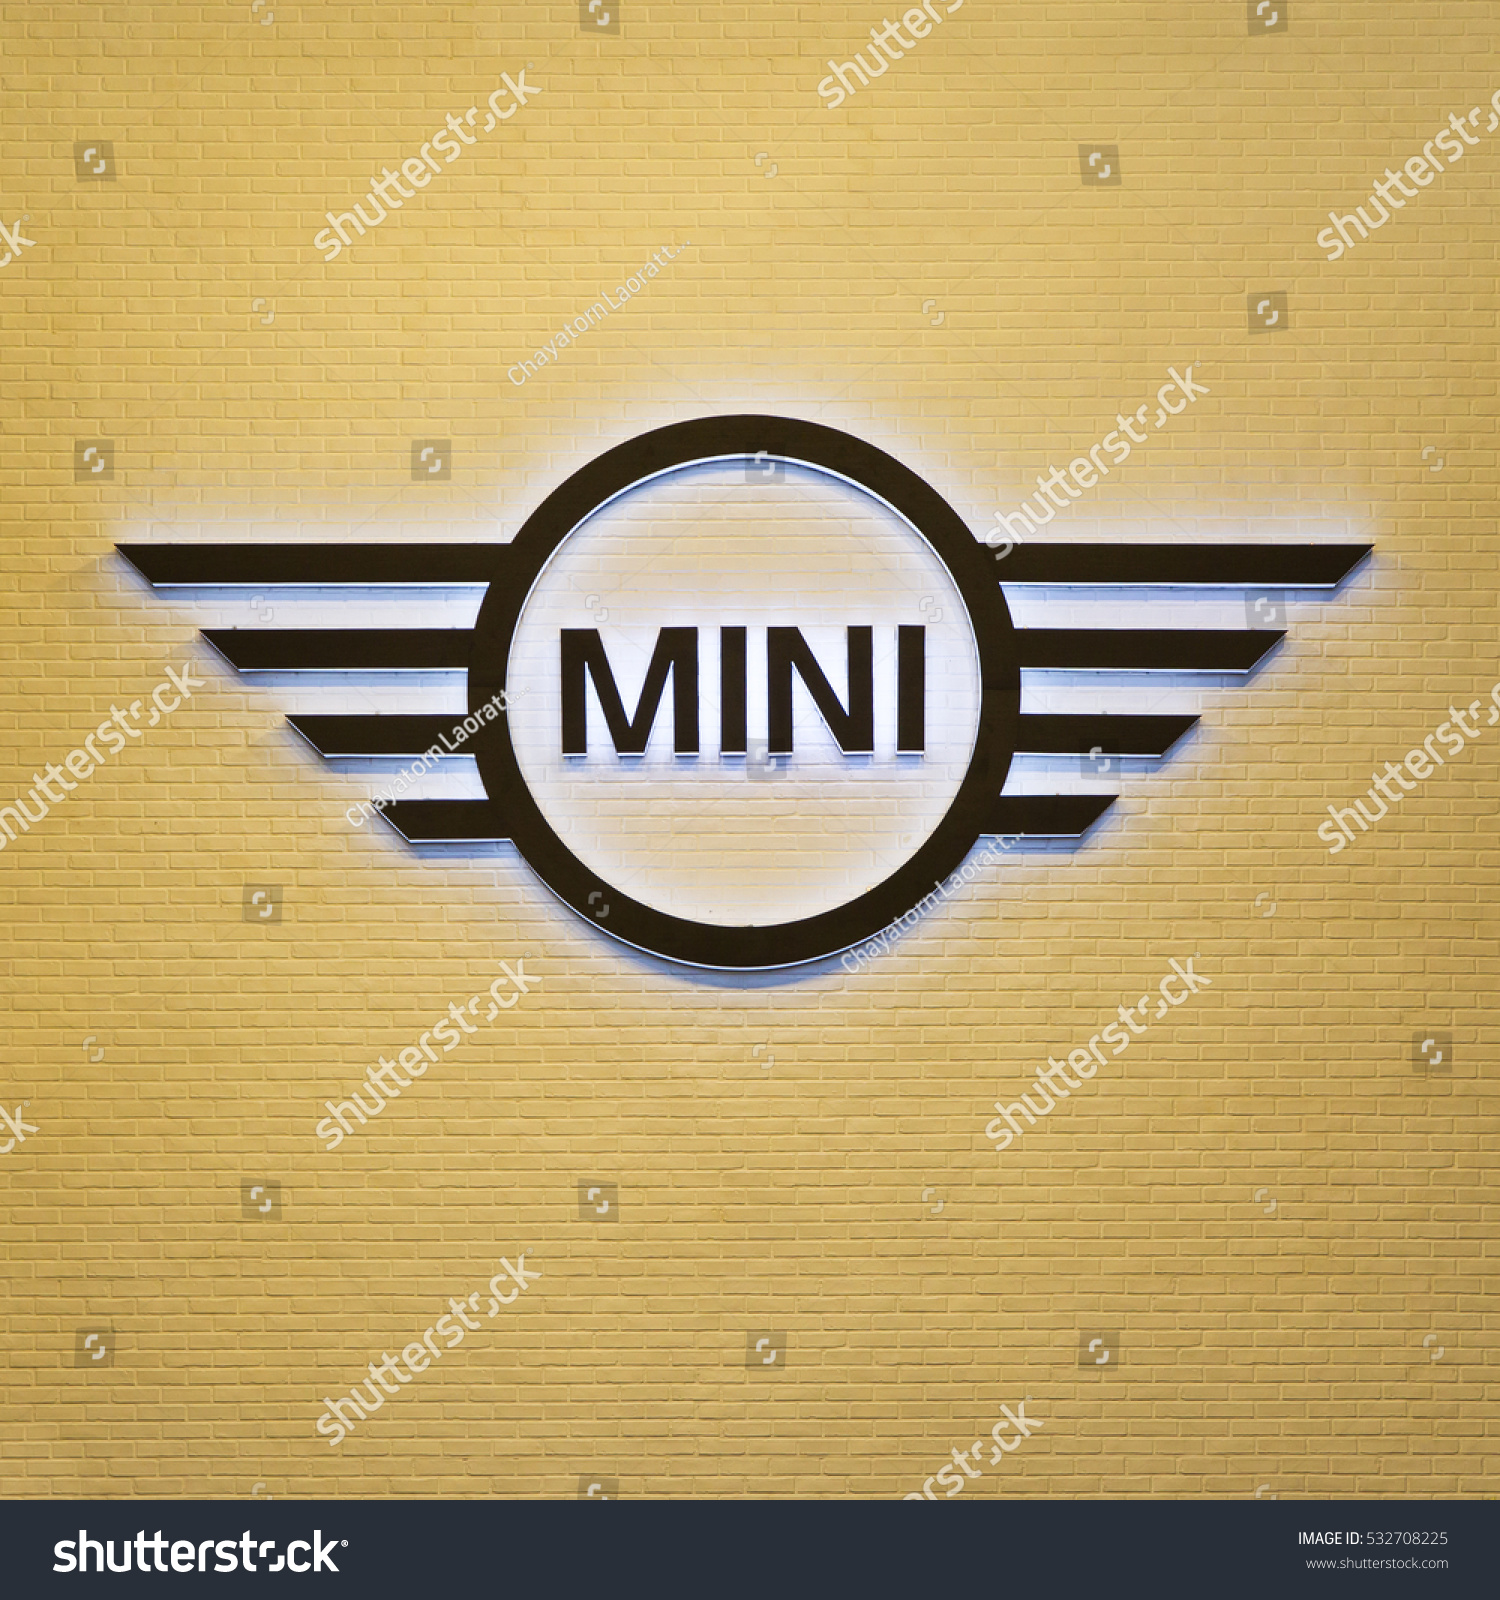 Bangkokthailanddec 3 photograph mini coopers logo stock photo bangkokthailand dec 3 photograph of mini coopers logo decorated on yellow wall biocorpaavc Images